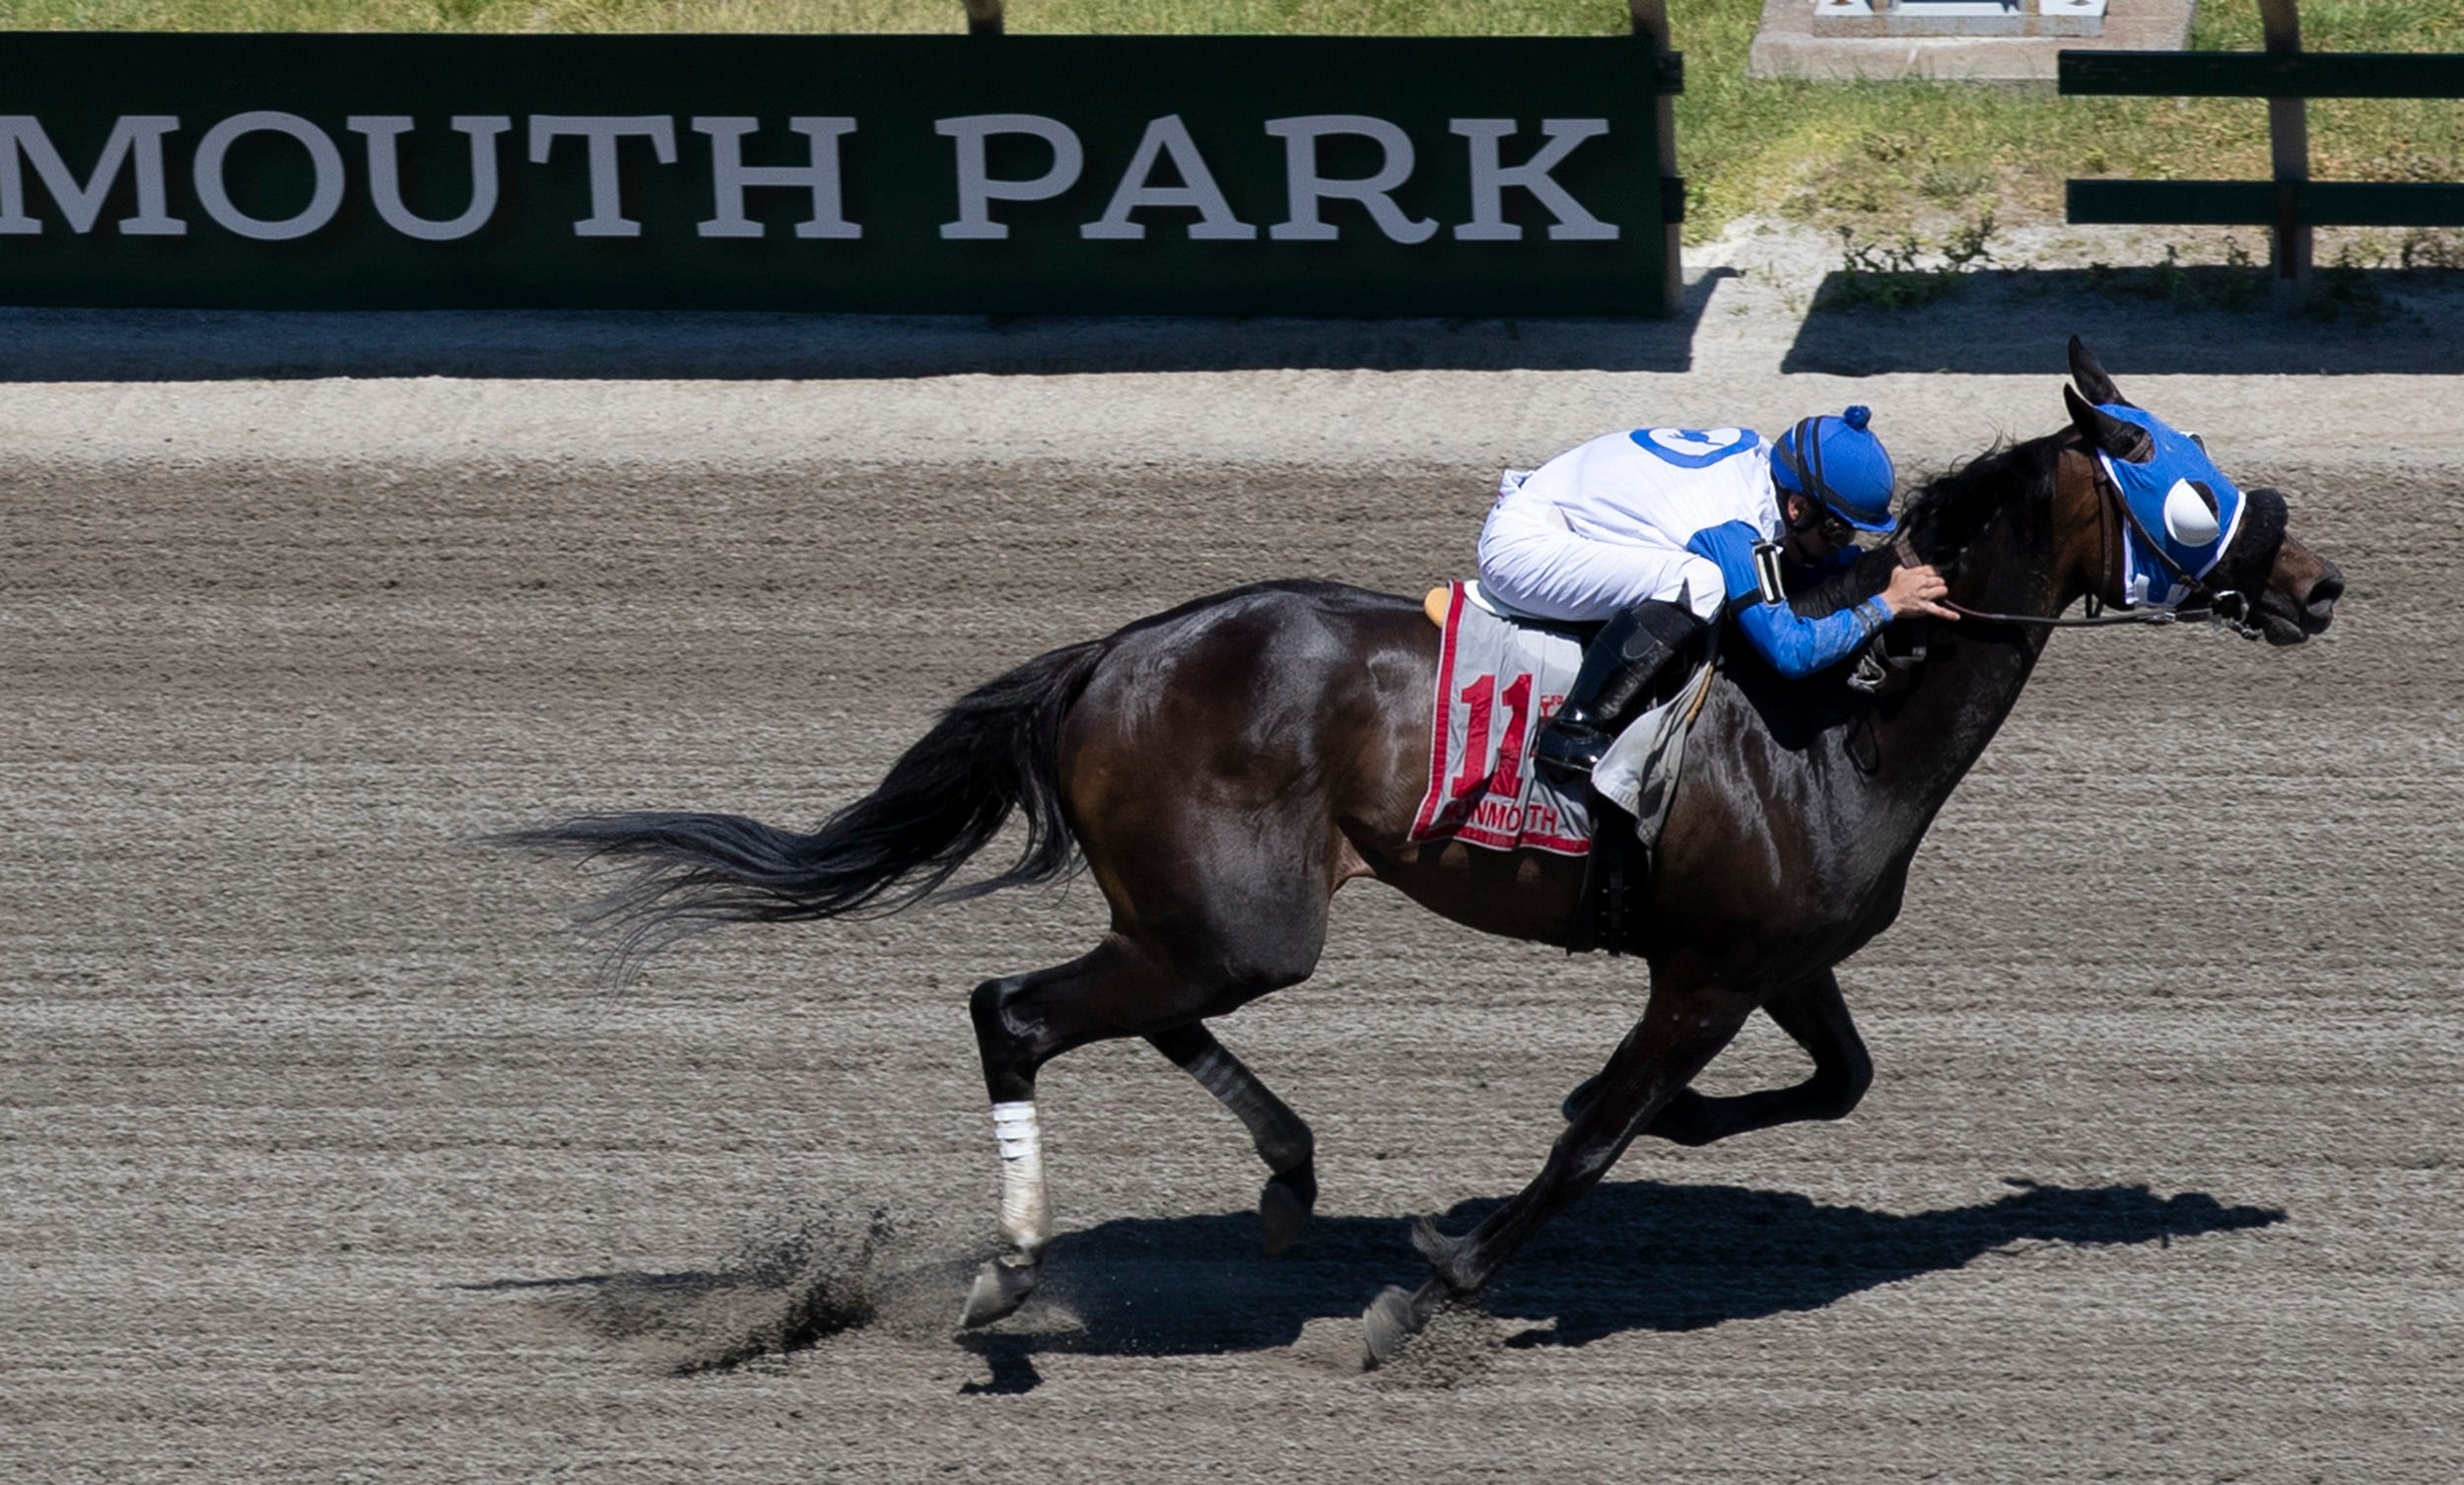 Father's Day draws crowds to Monmouth Park